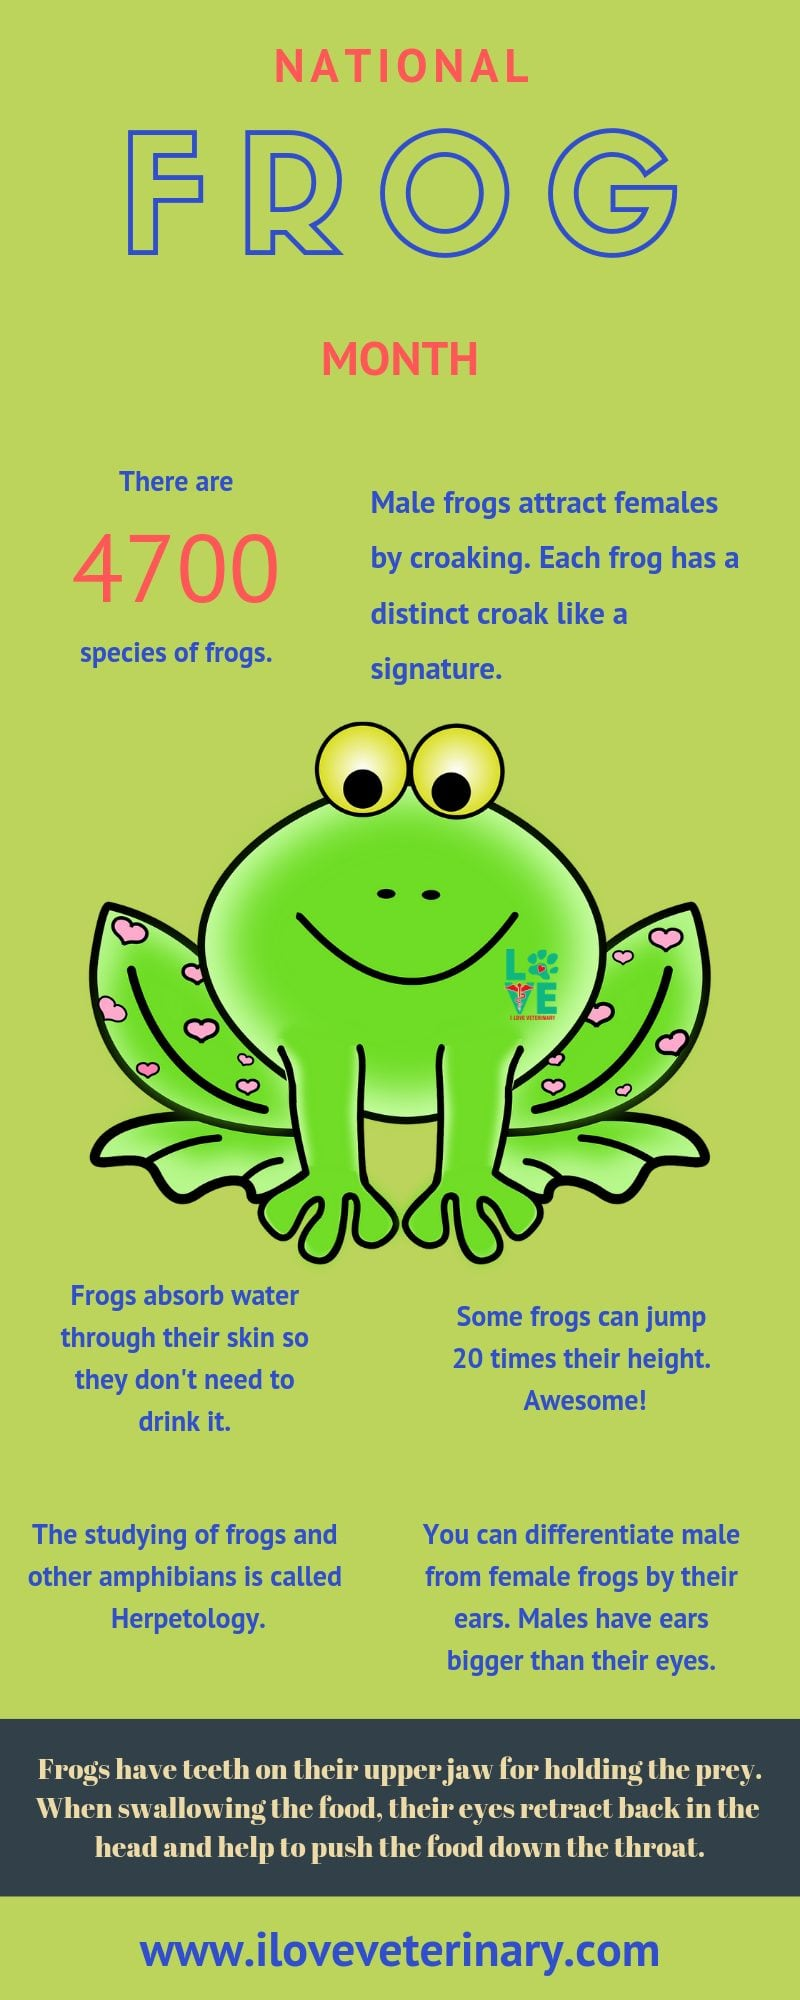 national frog month infographic